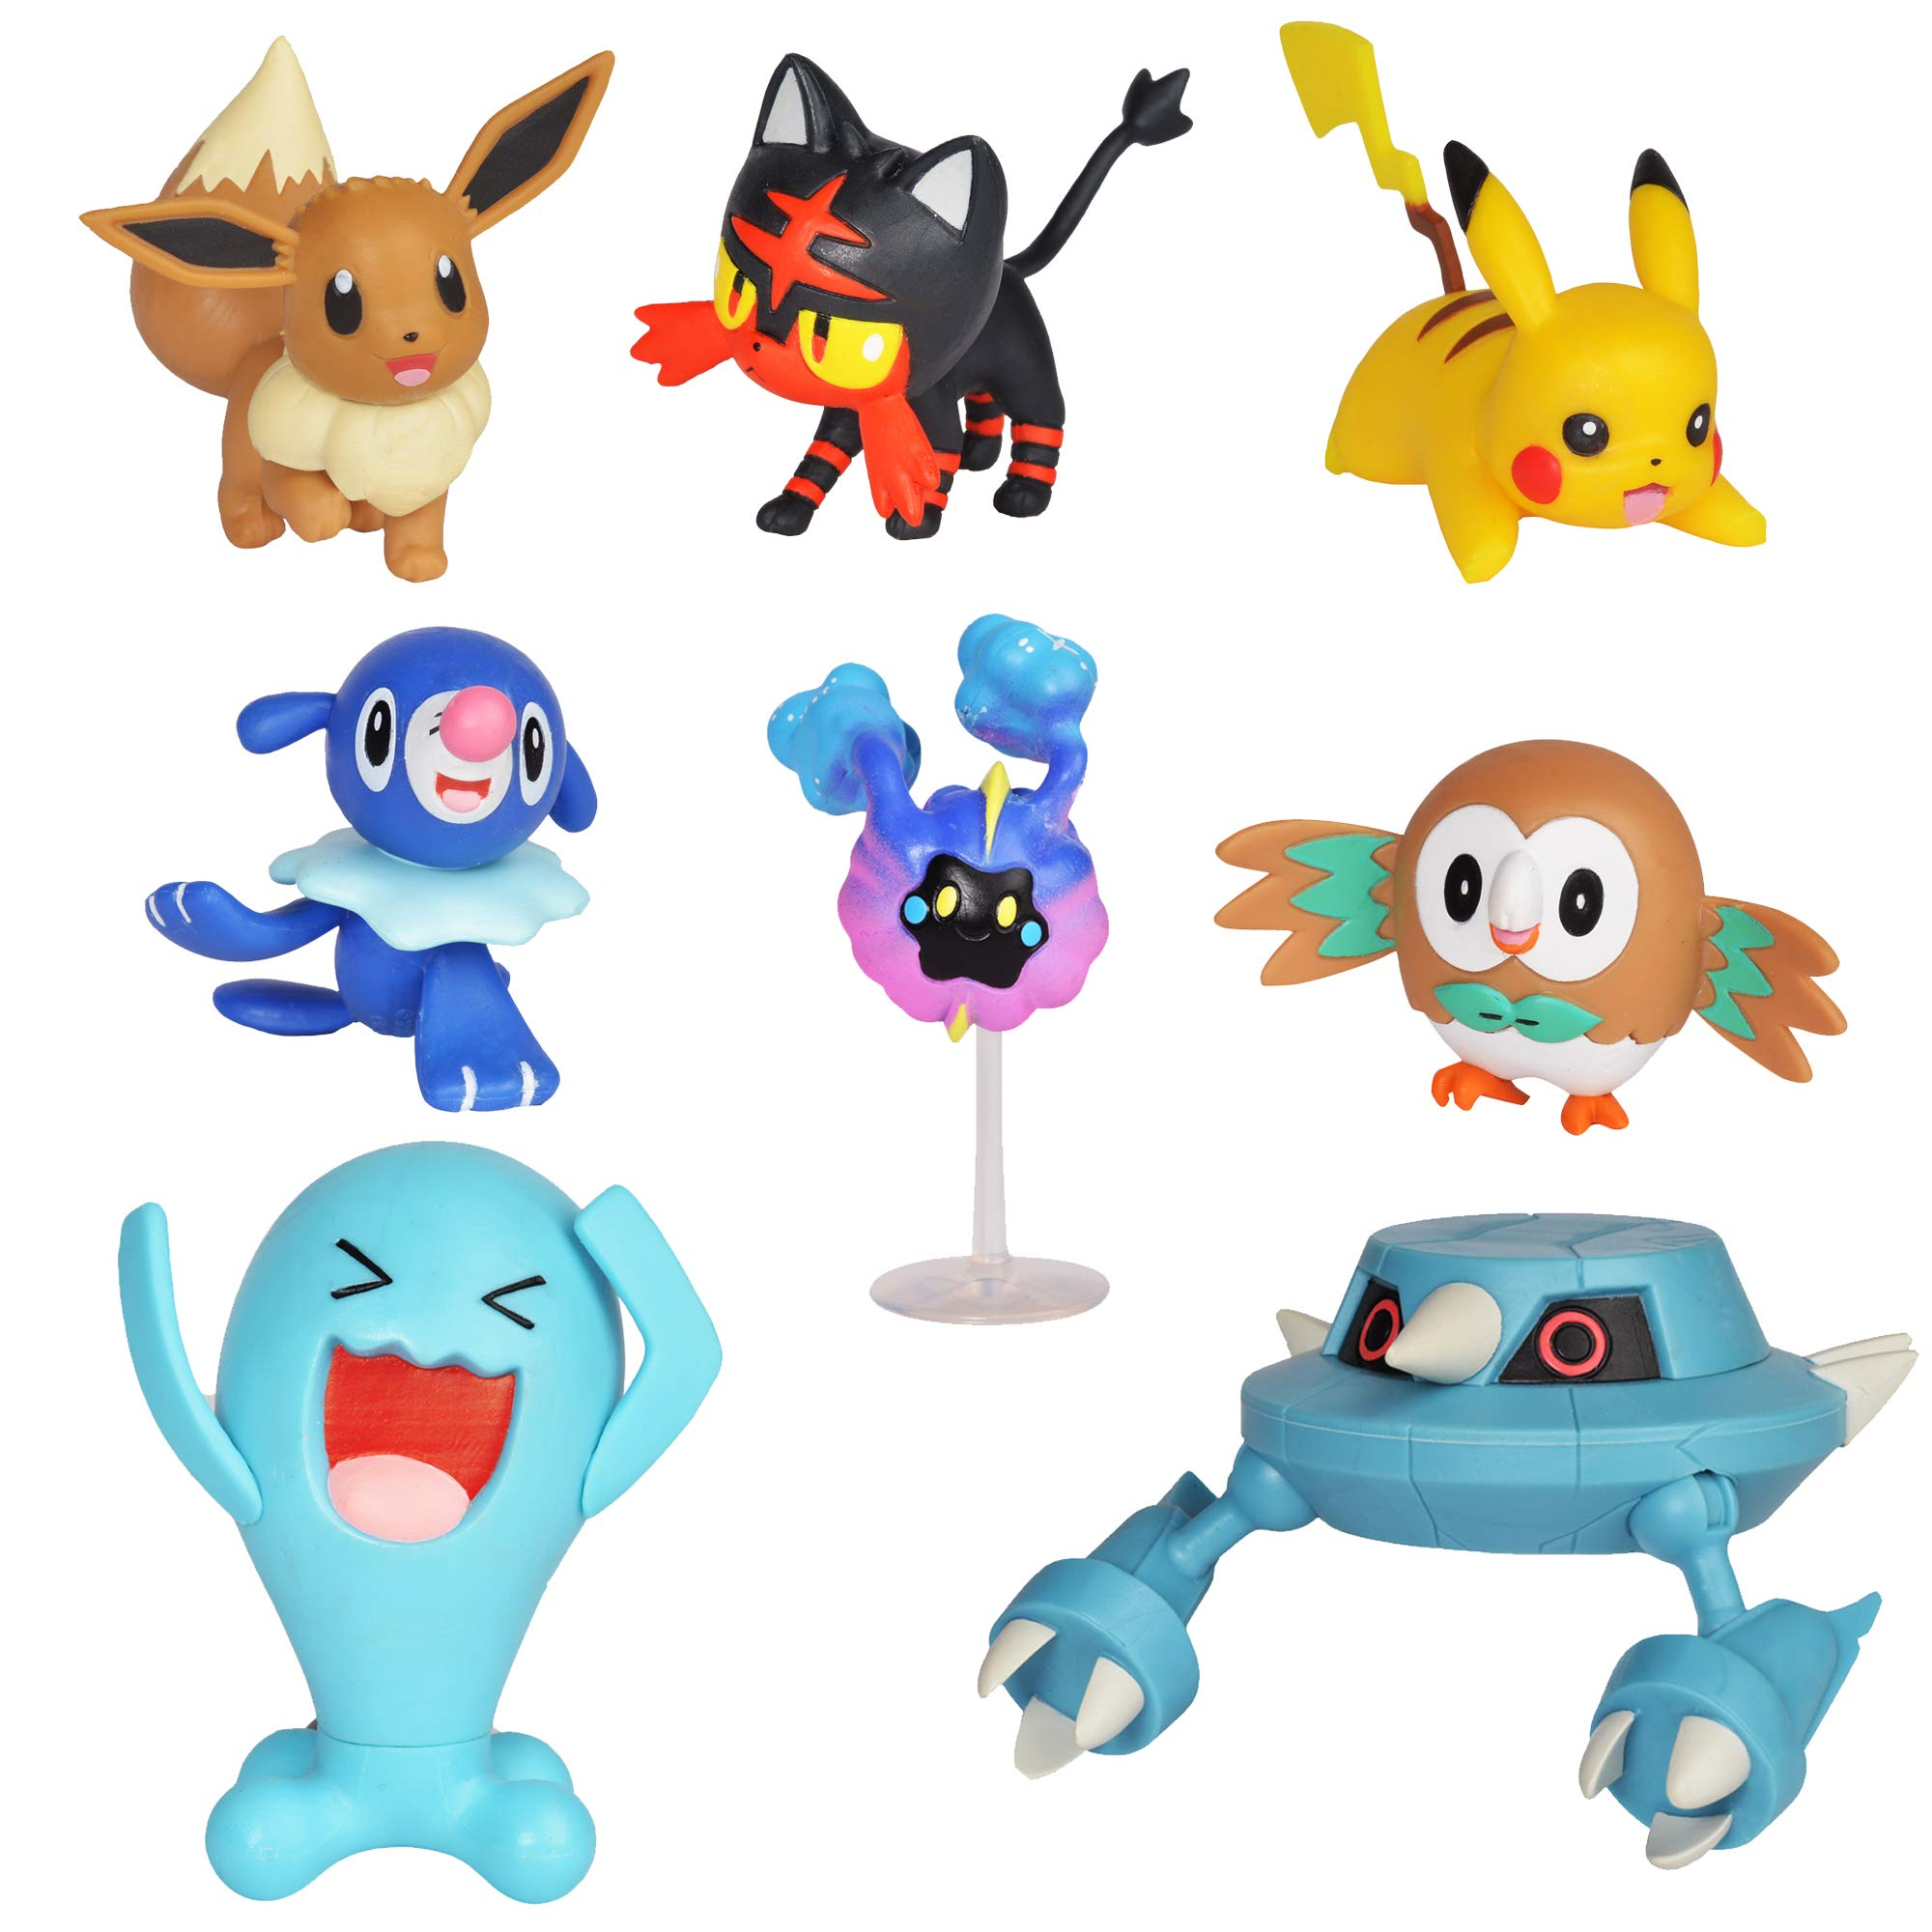 Pokemon Action Figure Mega Battle Pack - Comes with 2'' Rowlet, 2'' Popplio, 2'' Litten, 2'' Eevee, 2'' Pikachu,  2'' Cosmog, 3'' Metang, and 3'' Wobbuffet by Pokemon